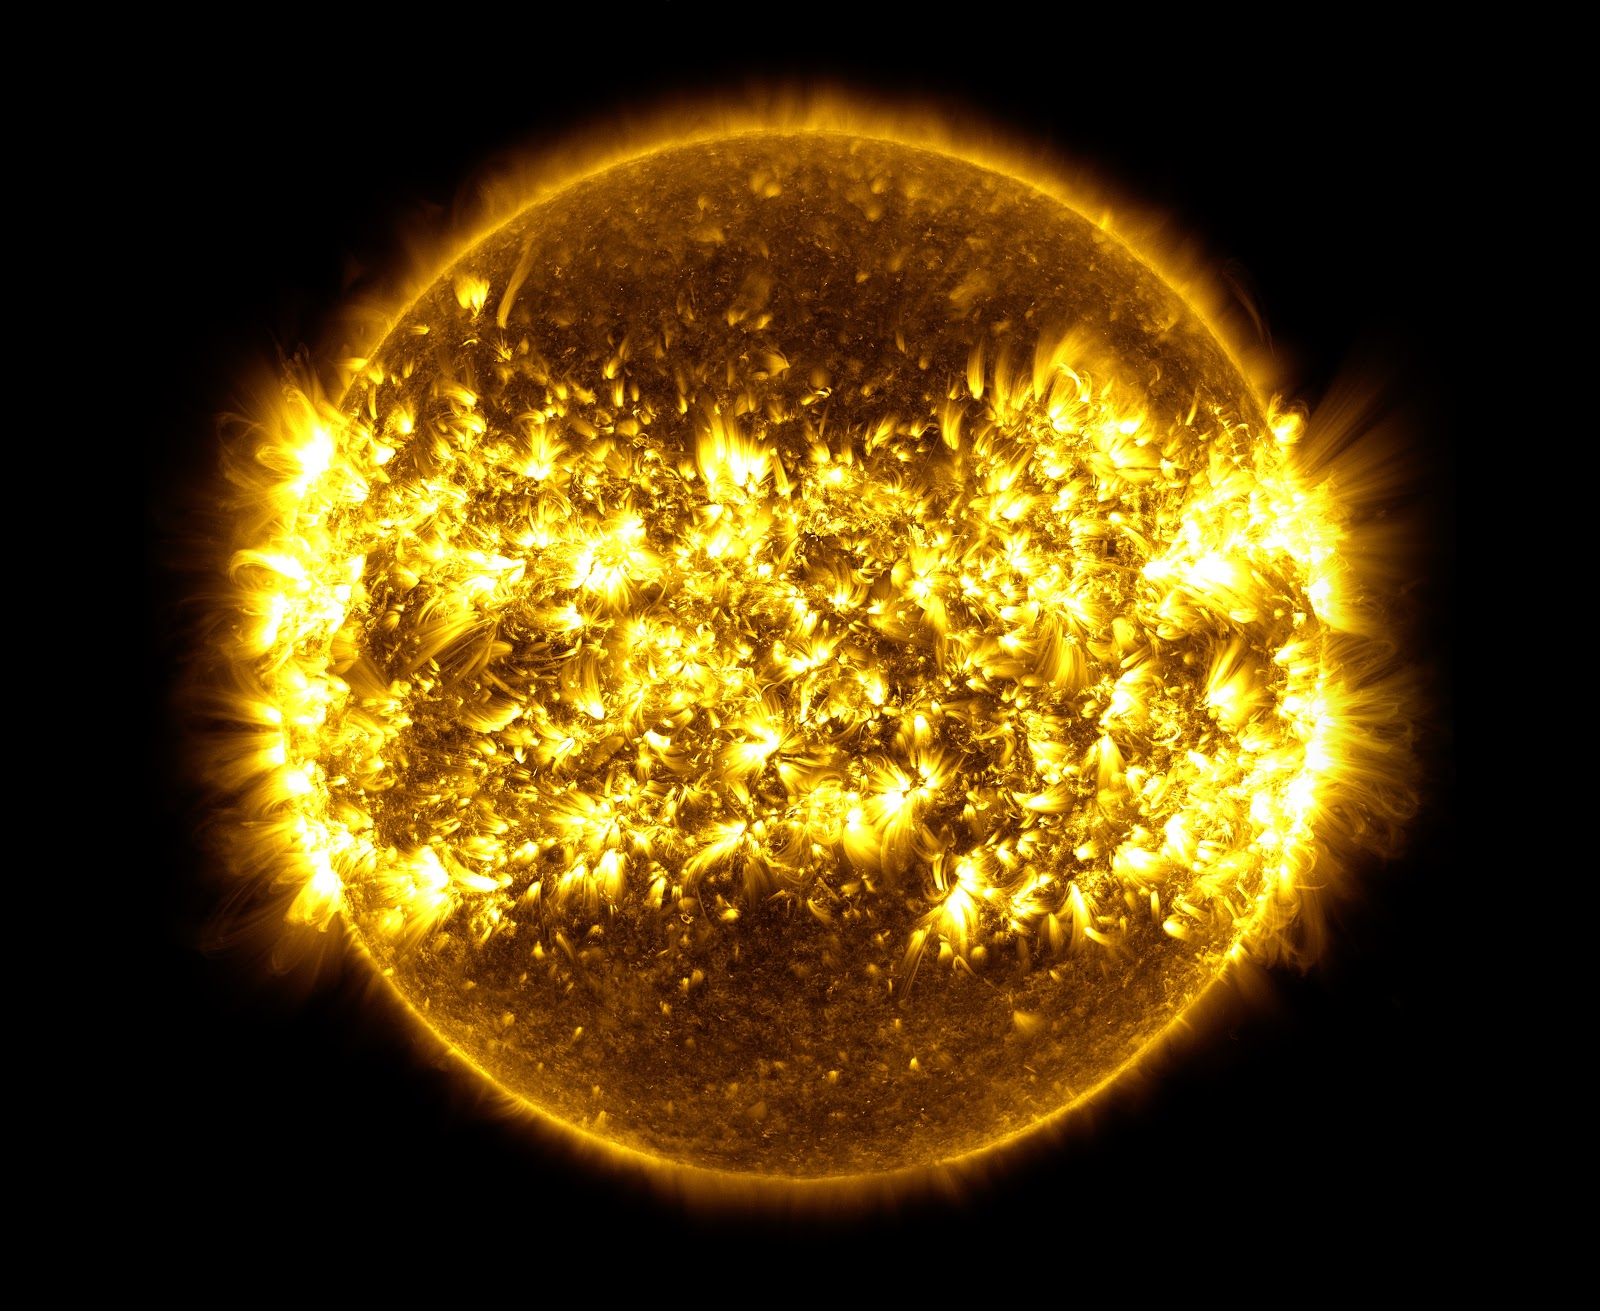 sdo solar dynamics observatory - photo #5